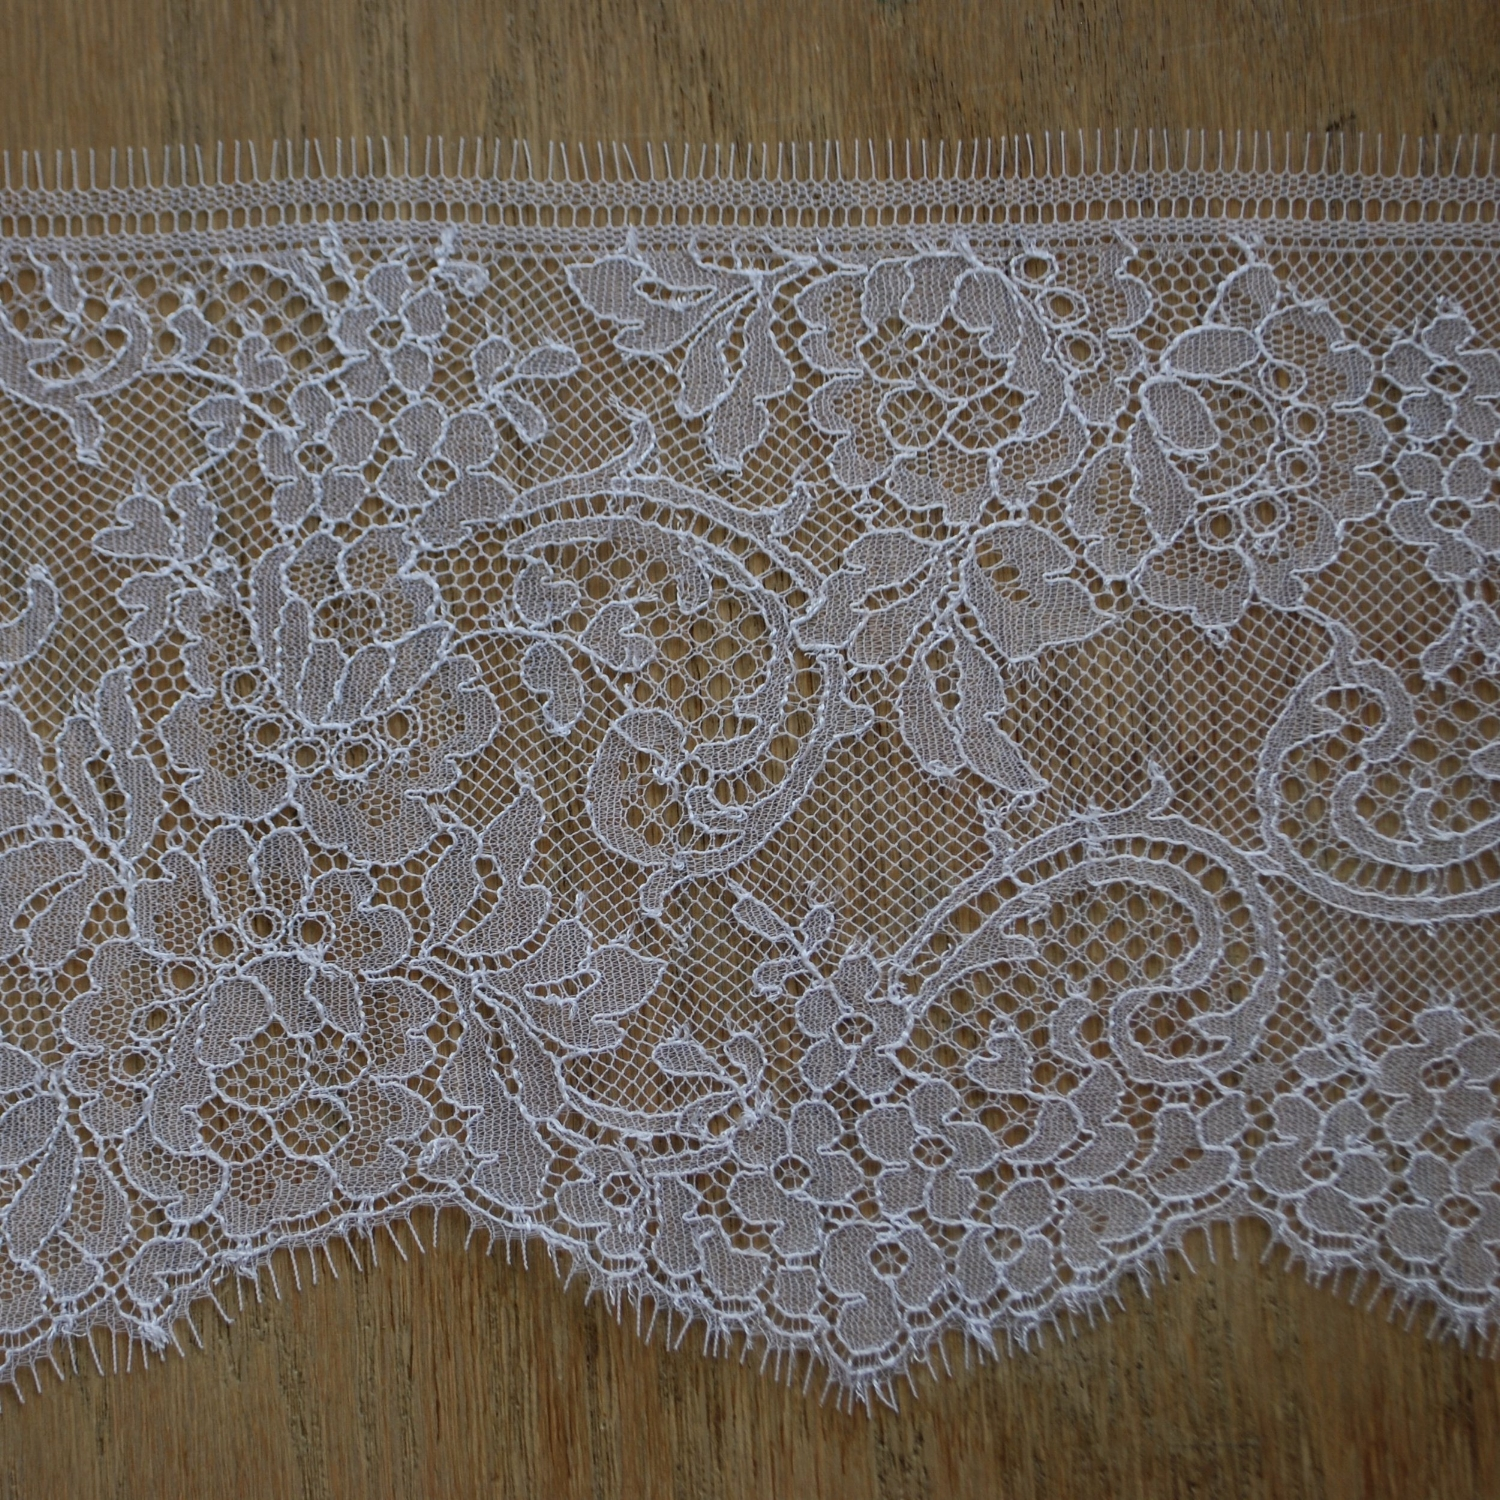 Chantilly is an extremely fine bobbin lace. It is so soft you can sleep in it.